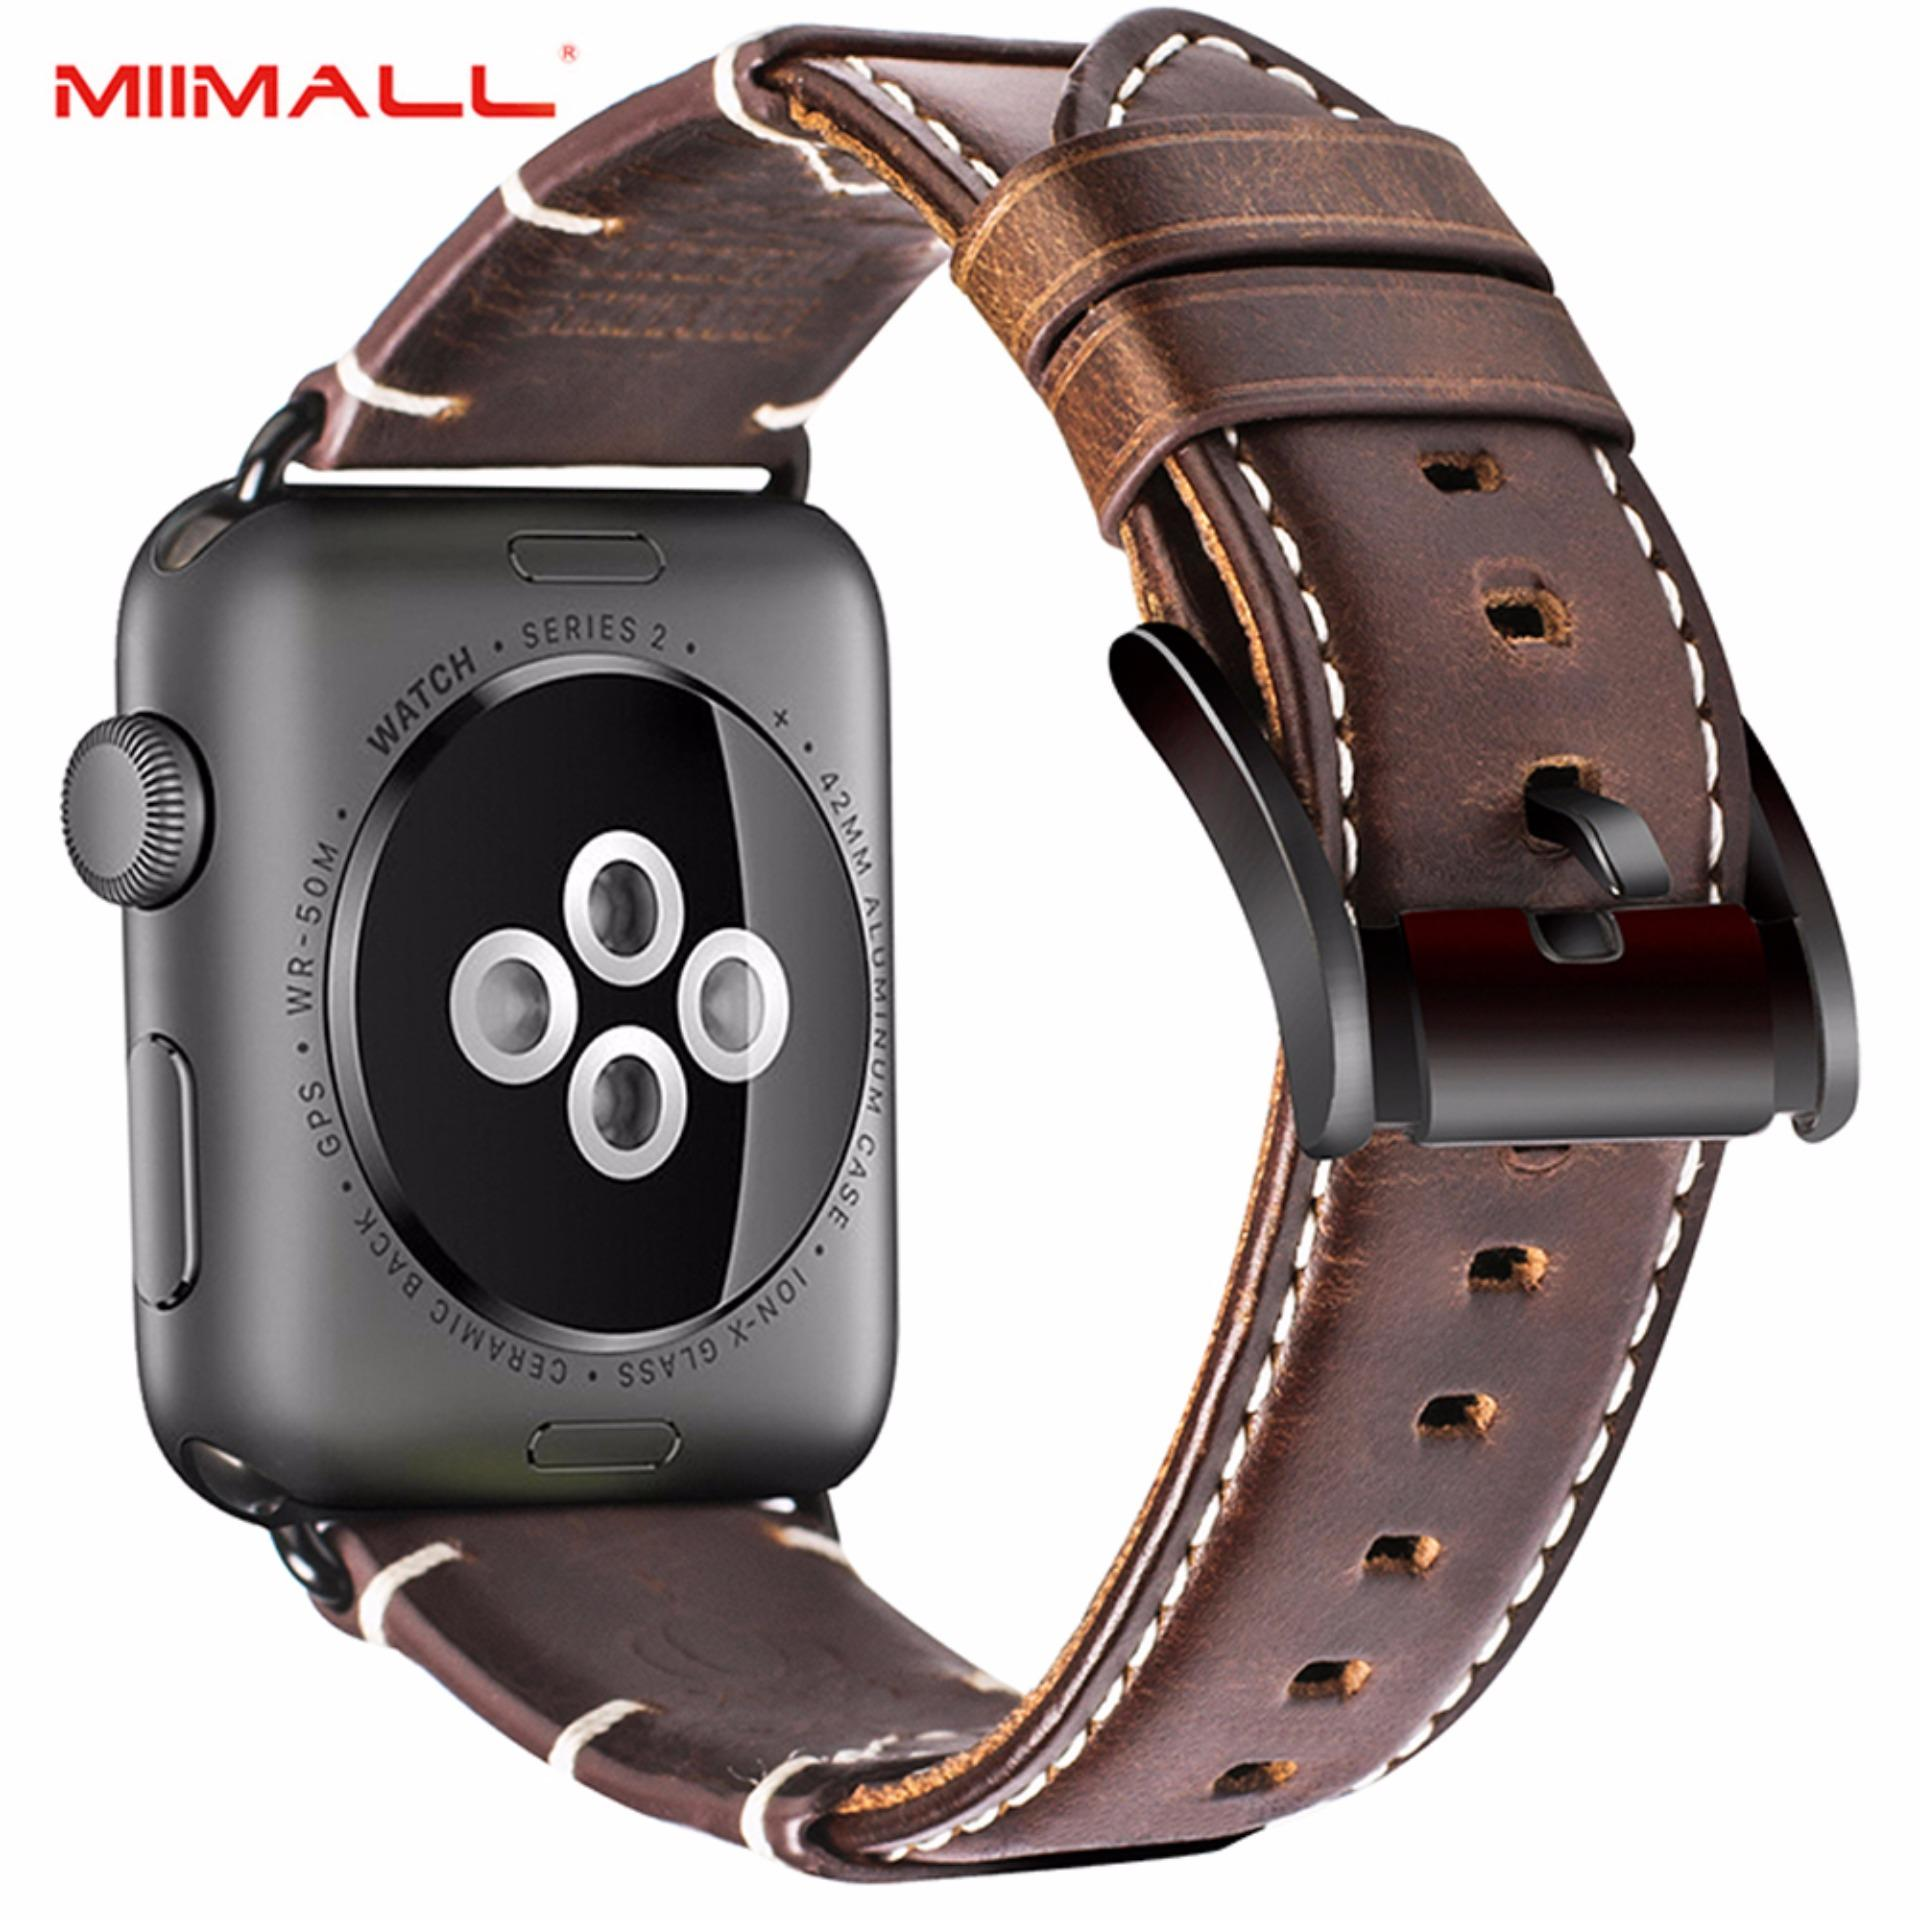 The Cheapest Miimall Apple Watch Strap 42Mm Retro Crazy Horse Texture Genuine Handcraft Leather Strap Classic Buckle Replacement Wrist Band Watch Strap With Stainless Metal Adapter For Apple Watch Series 3 Series 2 Series 1 38Mm All Versions Brown Intl Online